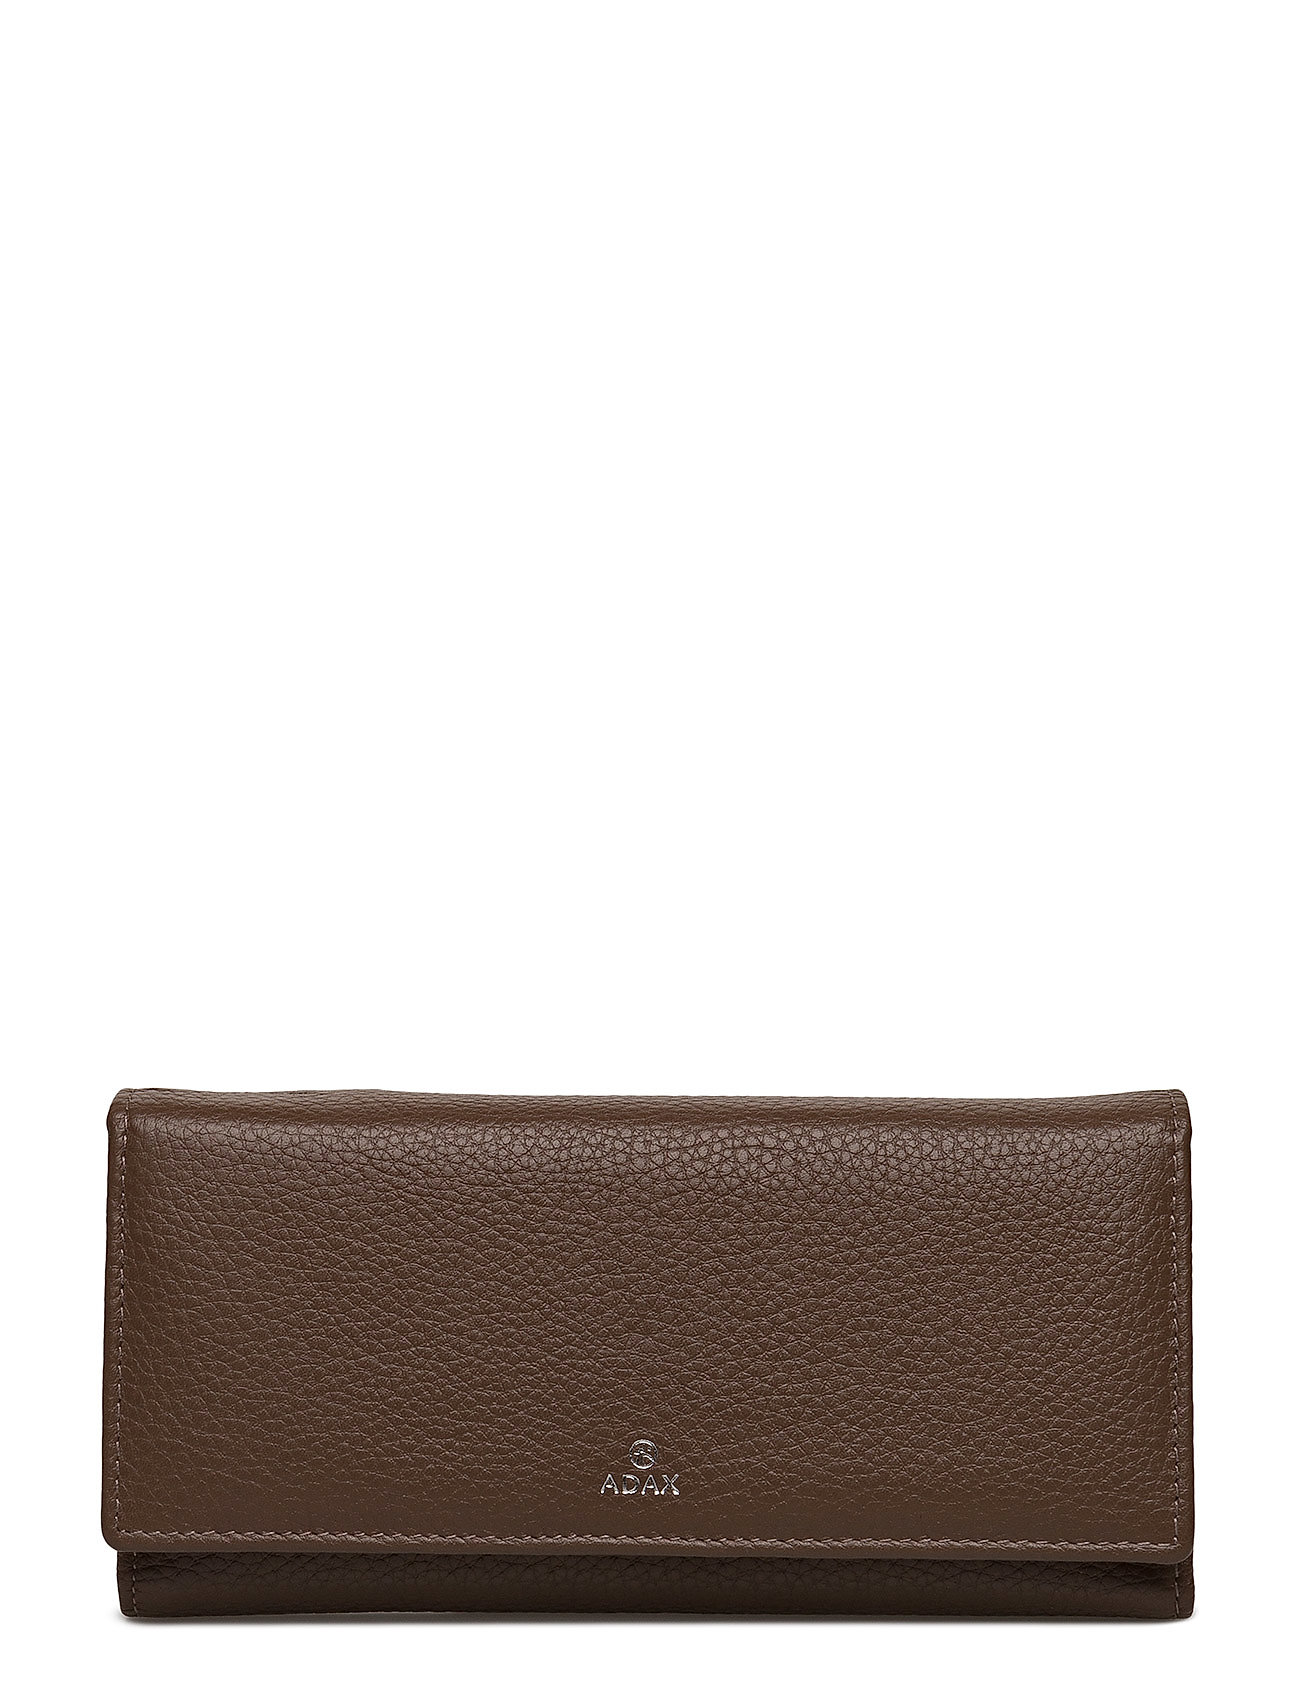 Cormorano Bags Card Holders & Wallets Wallets Ruskea Adax